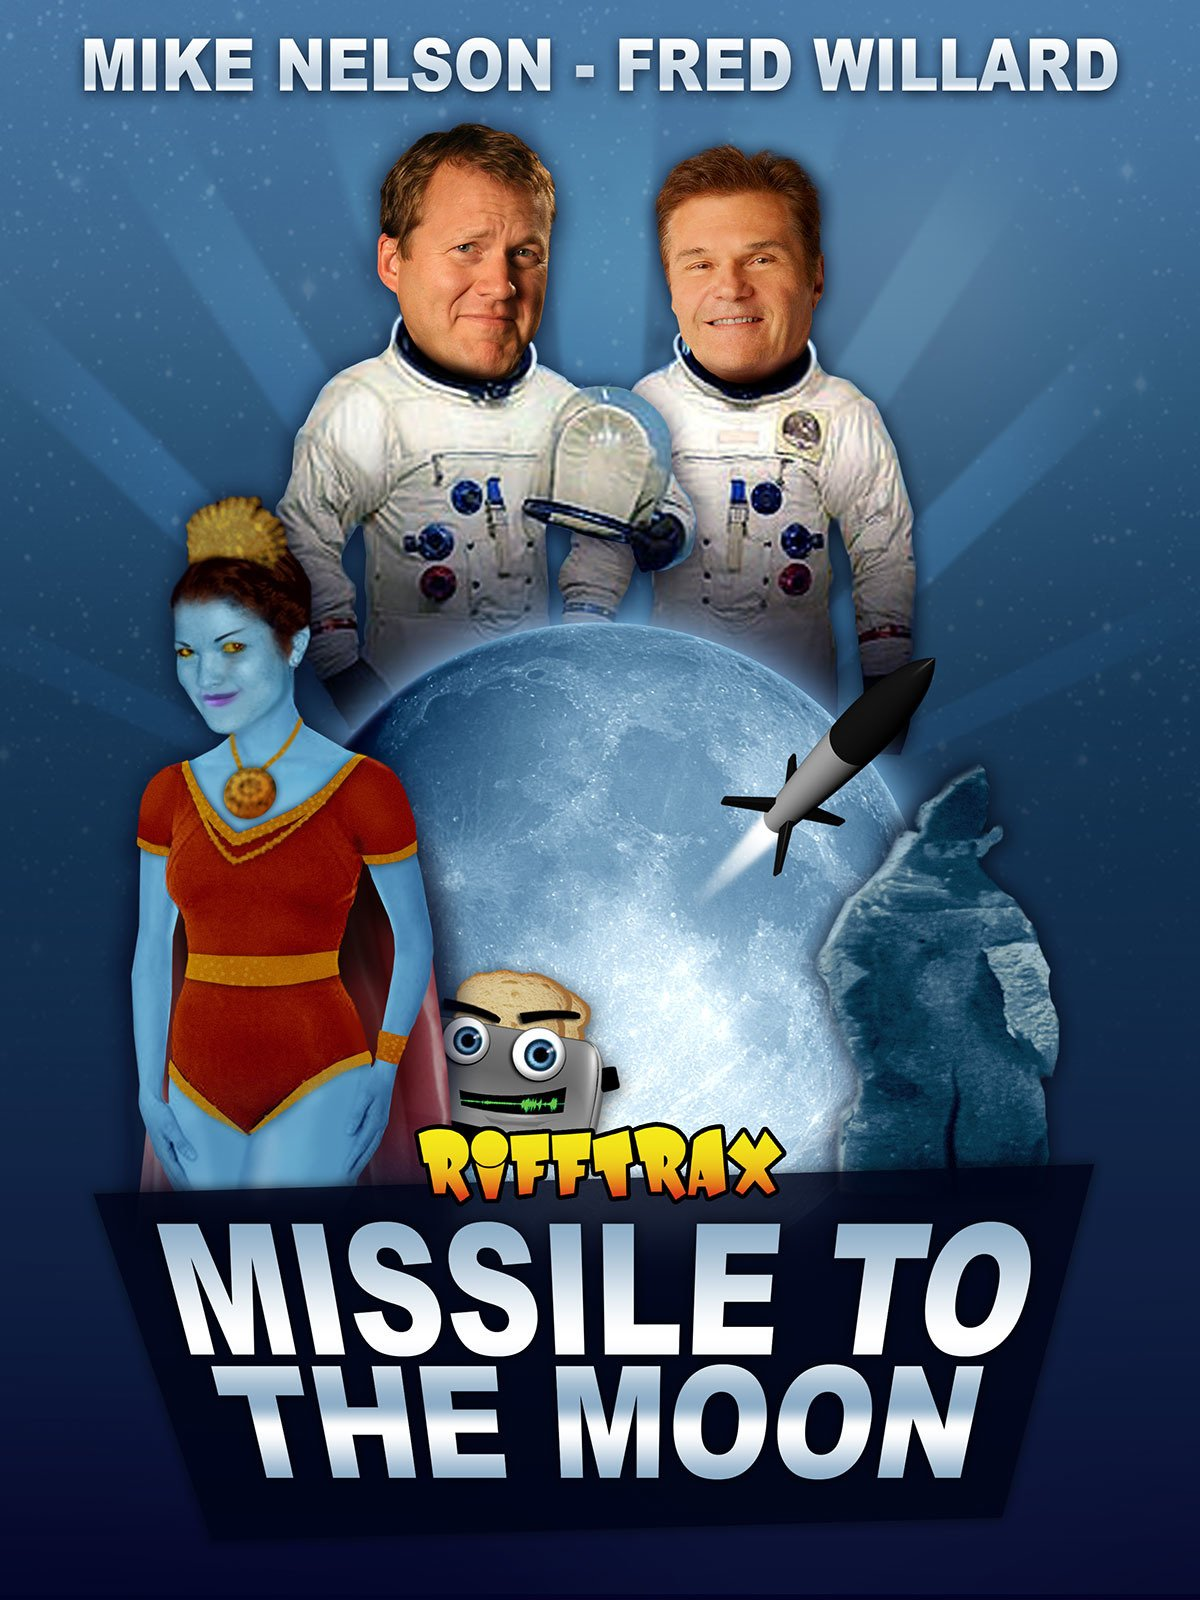 RiffTrax: Missile to the Moon feat. Fred Willard on Amazon Prime Video UK